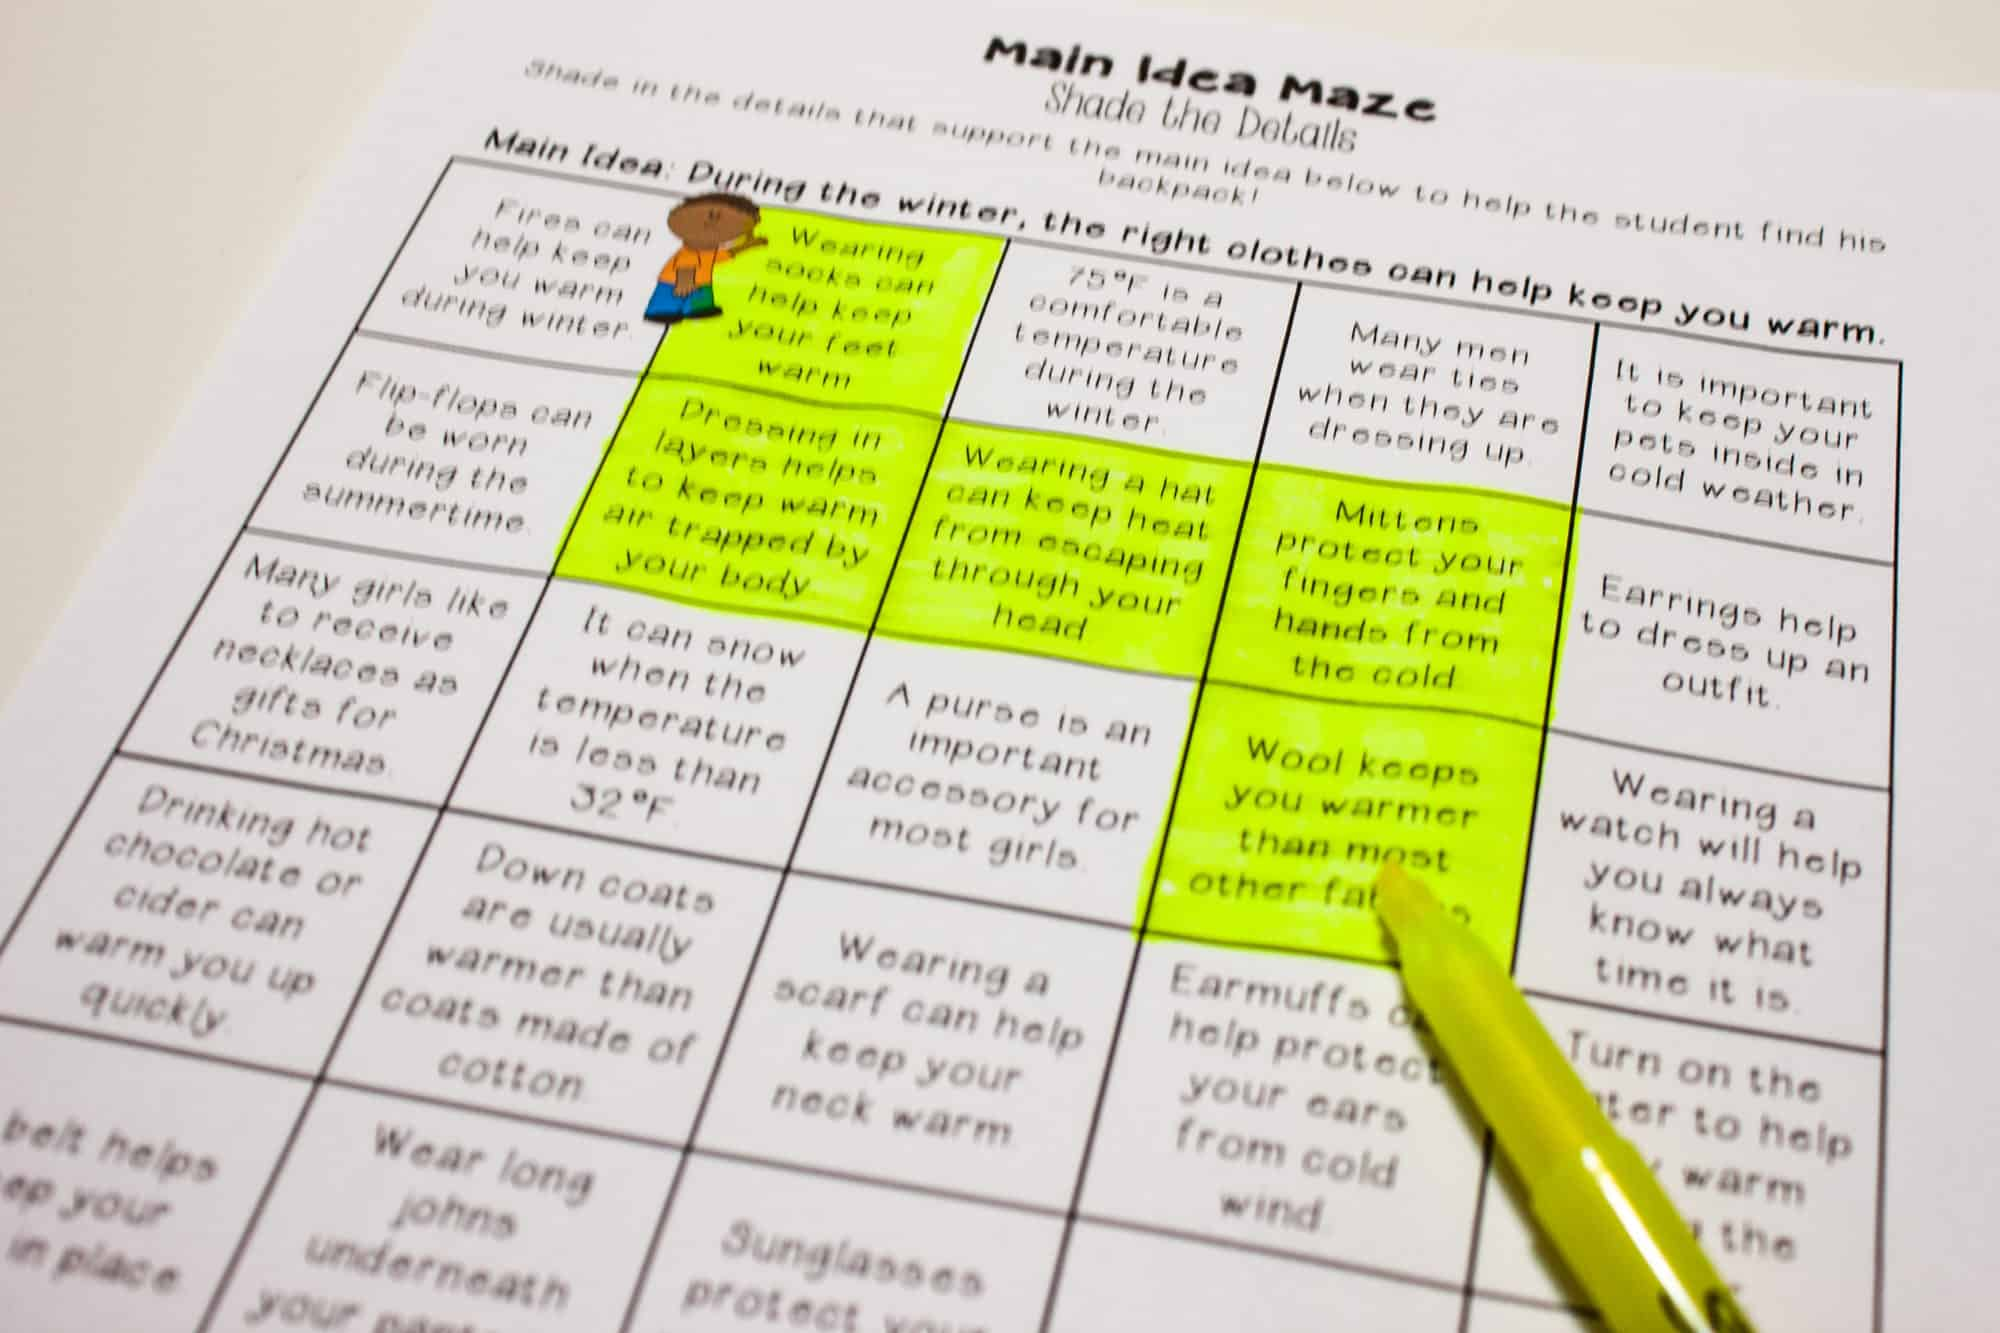 worksheet Supporting Details Worksheet main idea centers for upper elementary teaching made practical 3rd grade and supporting details center students are given a idea